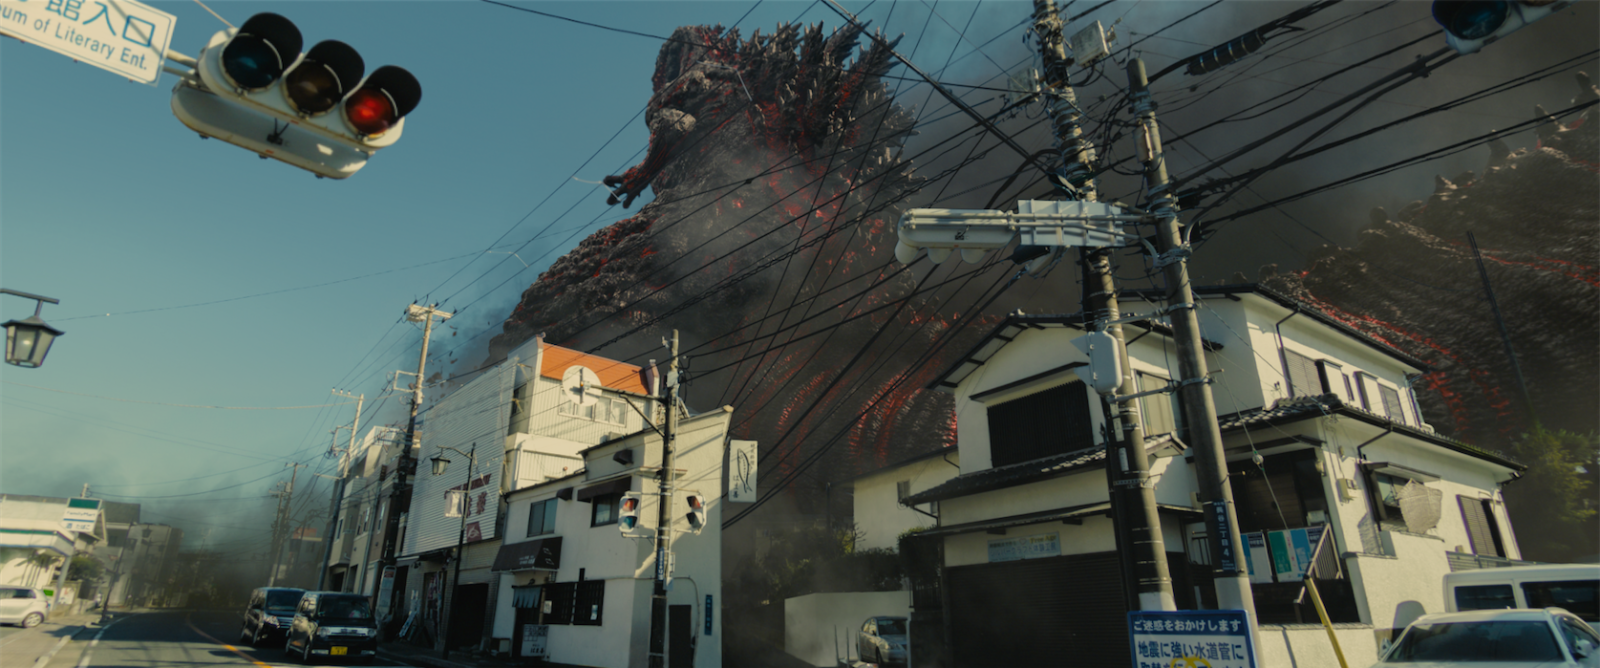 Hideaki Anno's Studio Sets The Record Straight On Godzilla Sequel Talk